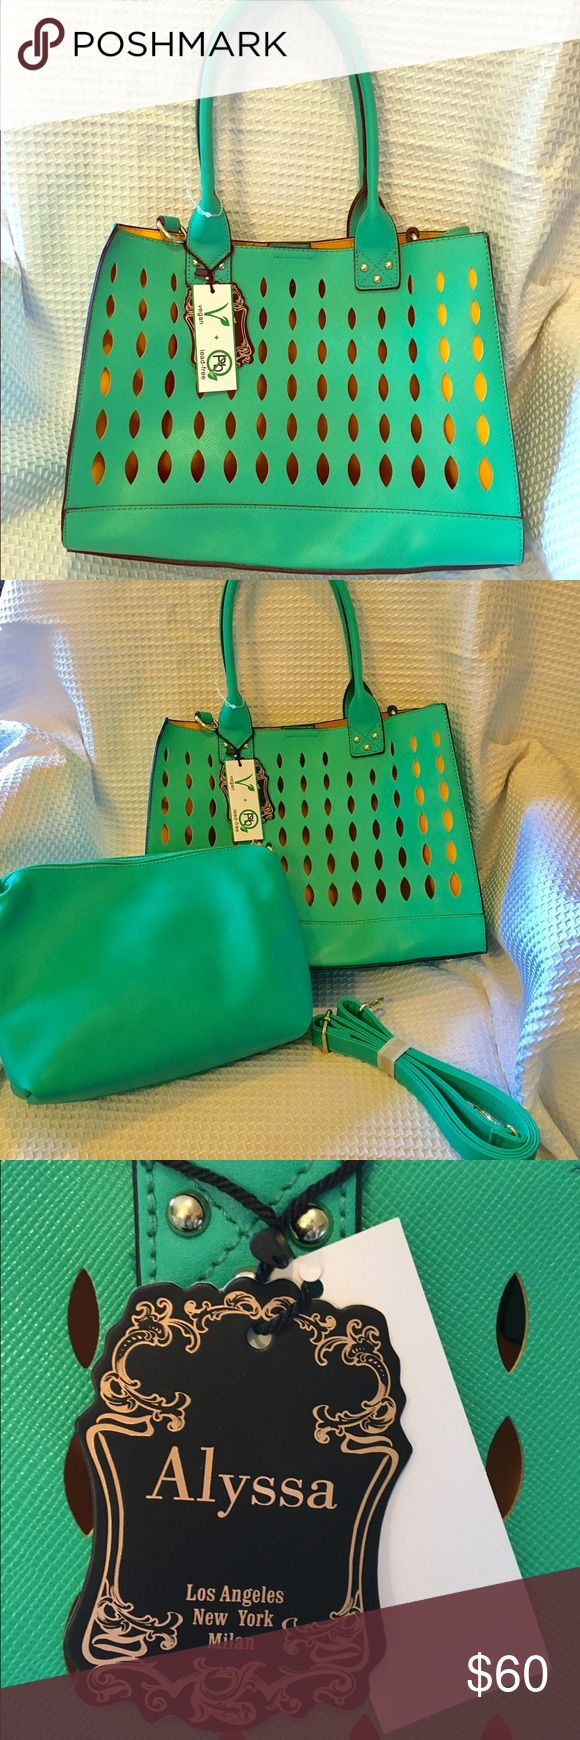 """Alyssa Vegan Mint Green 2 in 1 Satchel Lg Purse NWT ALYSSA Vegan and lead-free 2 in 1 satchel.  A pretty Mint Green with Yellow interior.  Removable handbag inside has a zippered closure. Gold studs and hardware on the Purse.  Removable/adjustable shoulder strap. The purse measures 14"""" x 11"""" with a 9 inch strap drop. The removable hand bag measures approximately 12"""" x 9"""". If you have any questions just ask! ALYSSA Bags Satchels"""